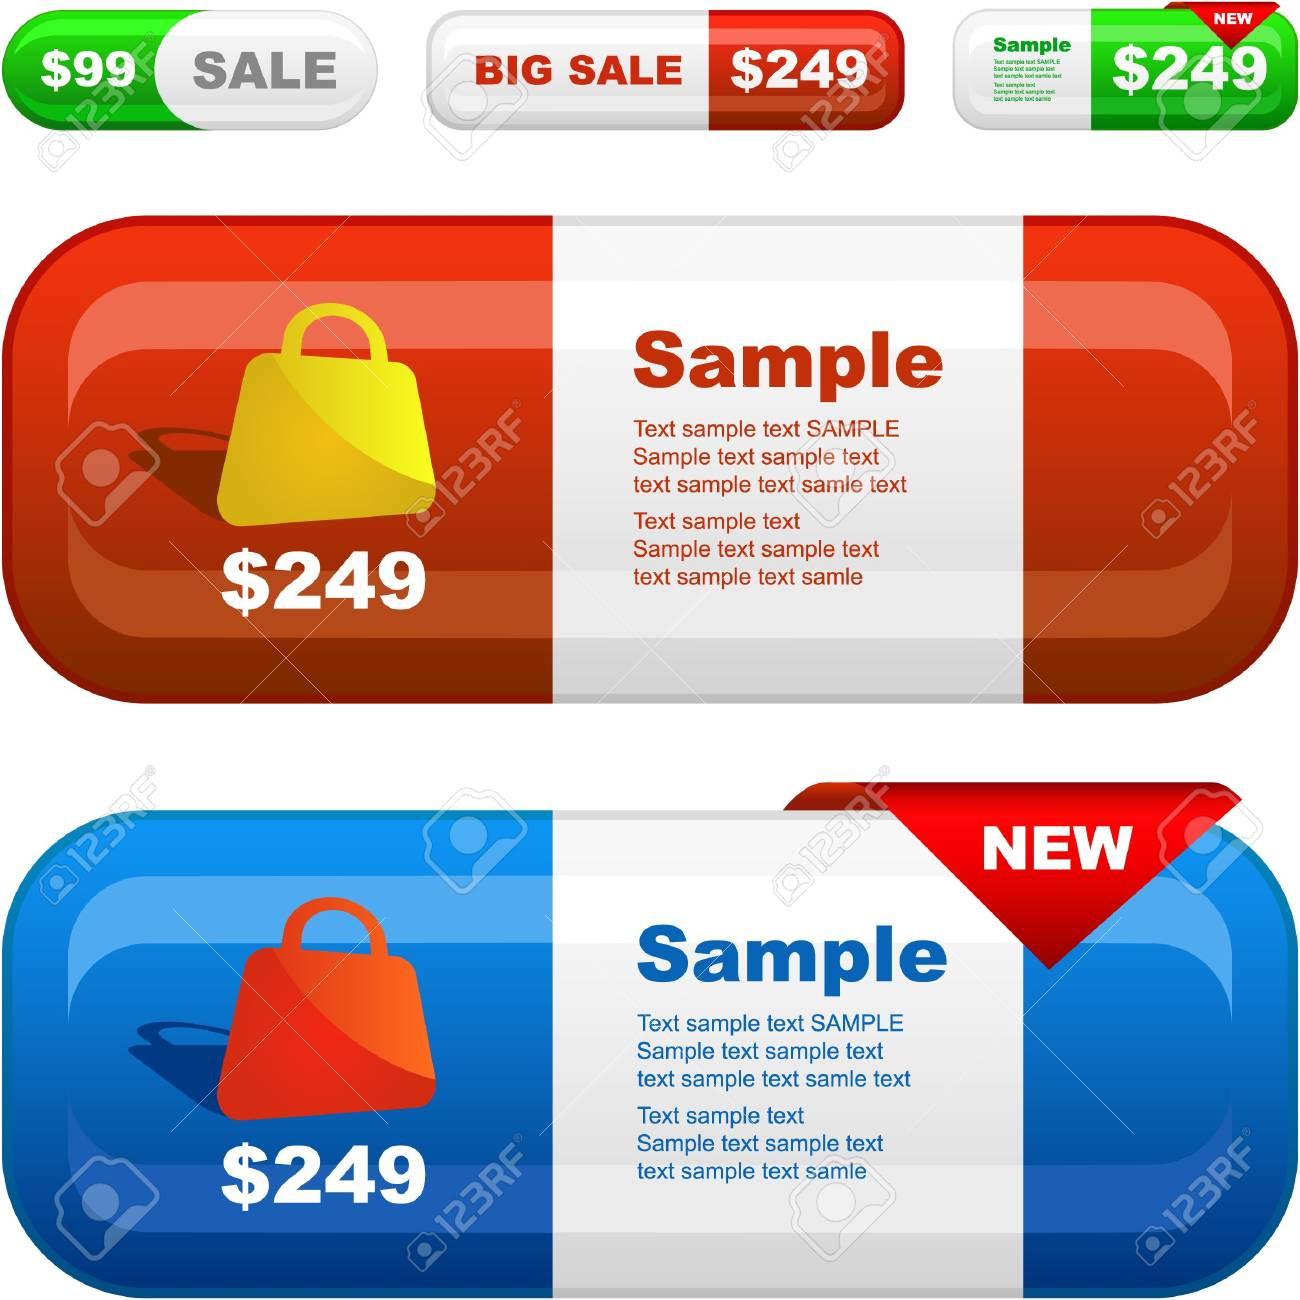 Banner set for sale. Stock Photo - 7880877